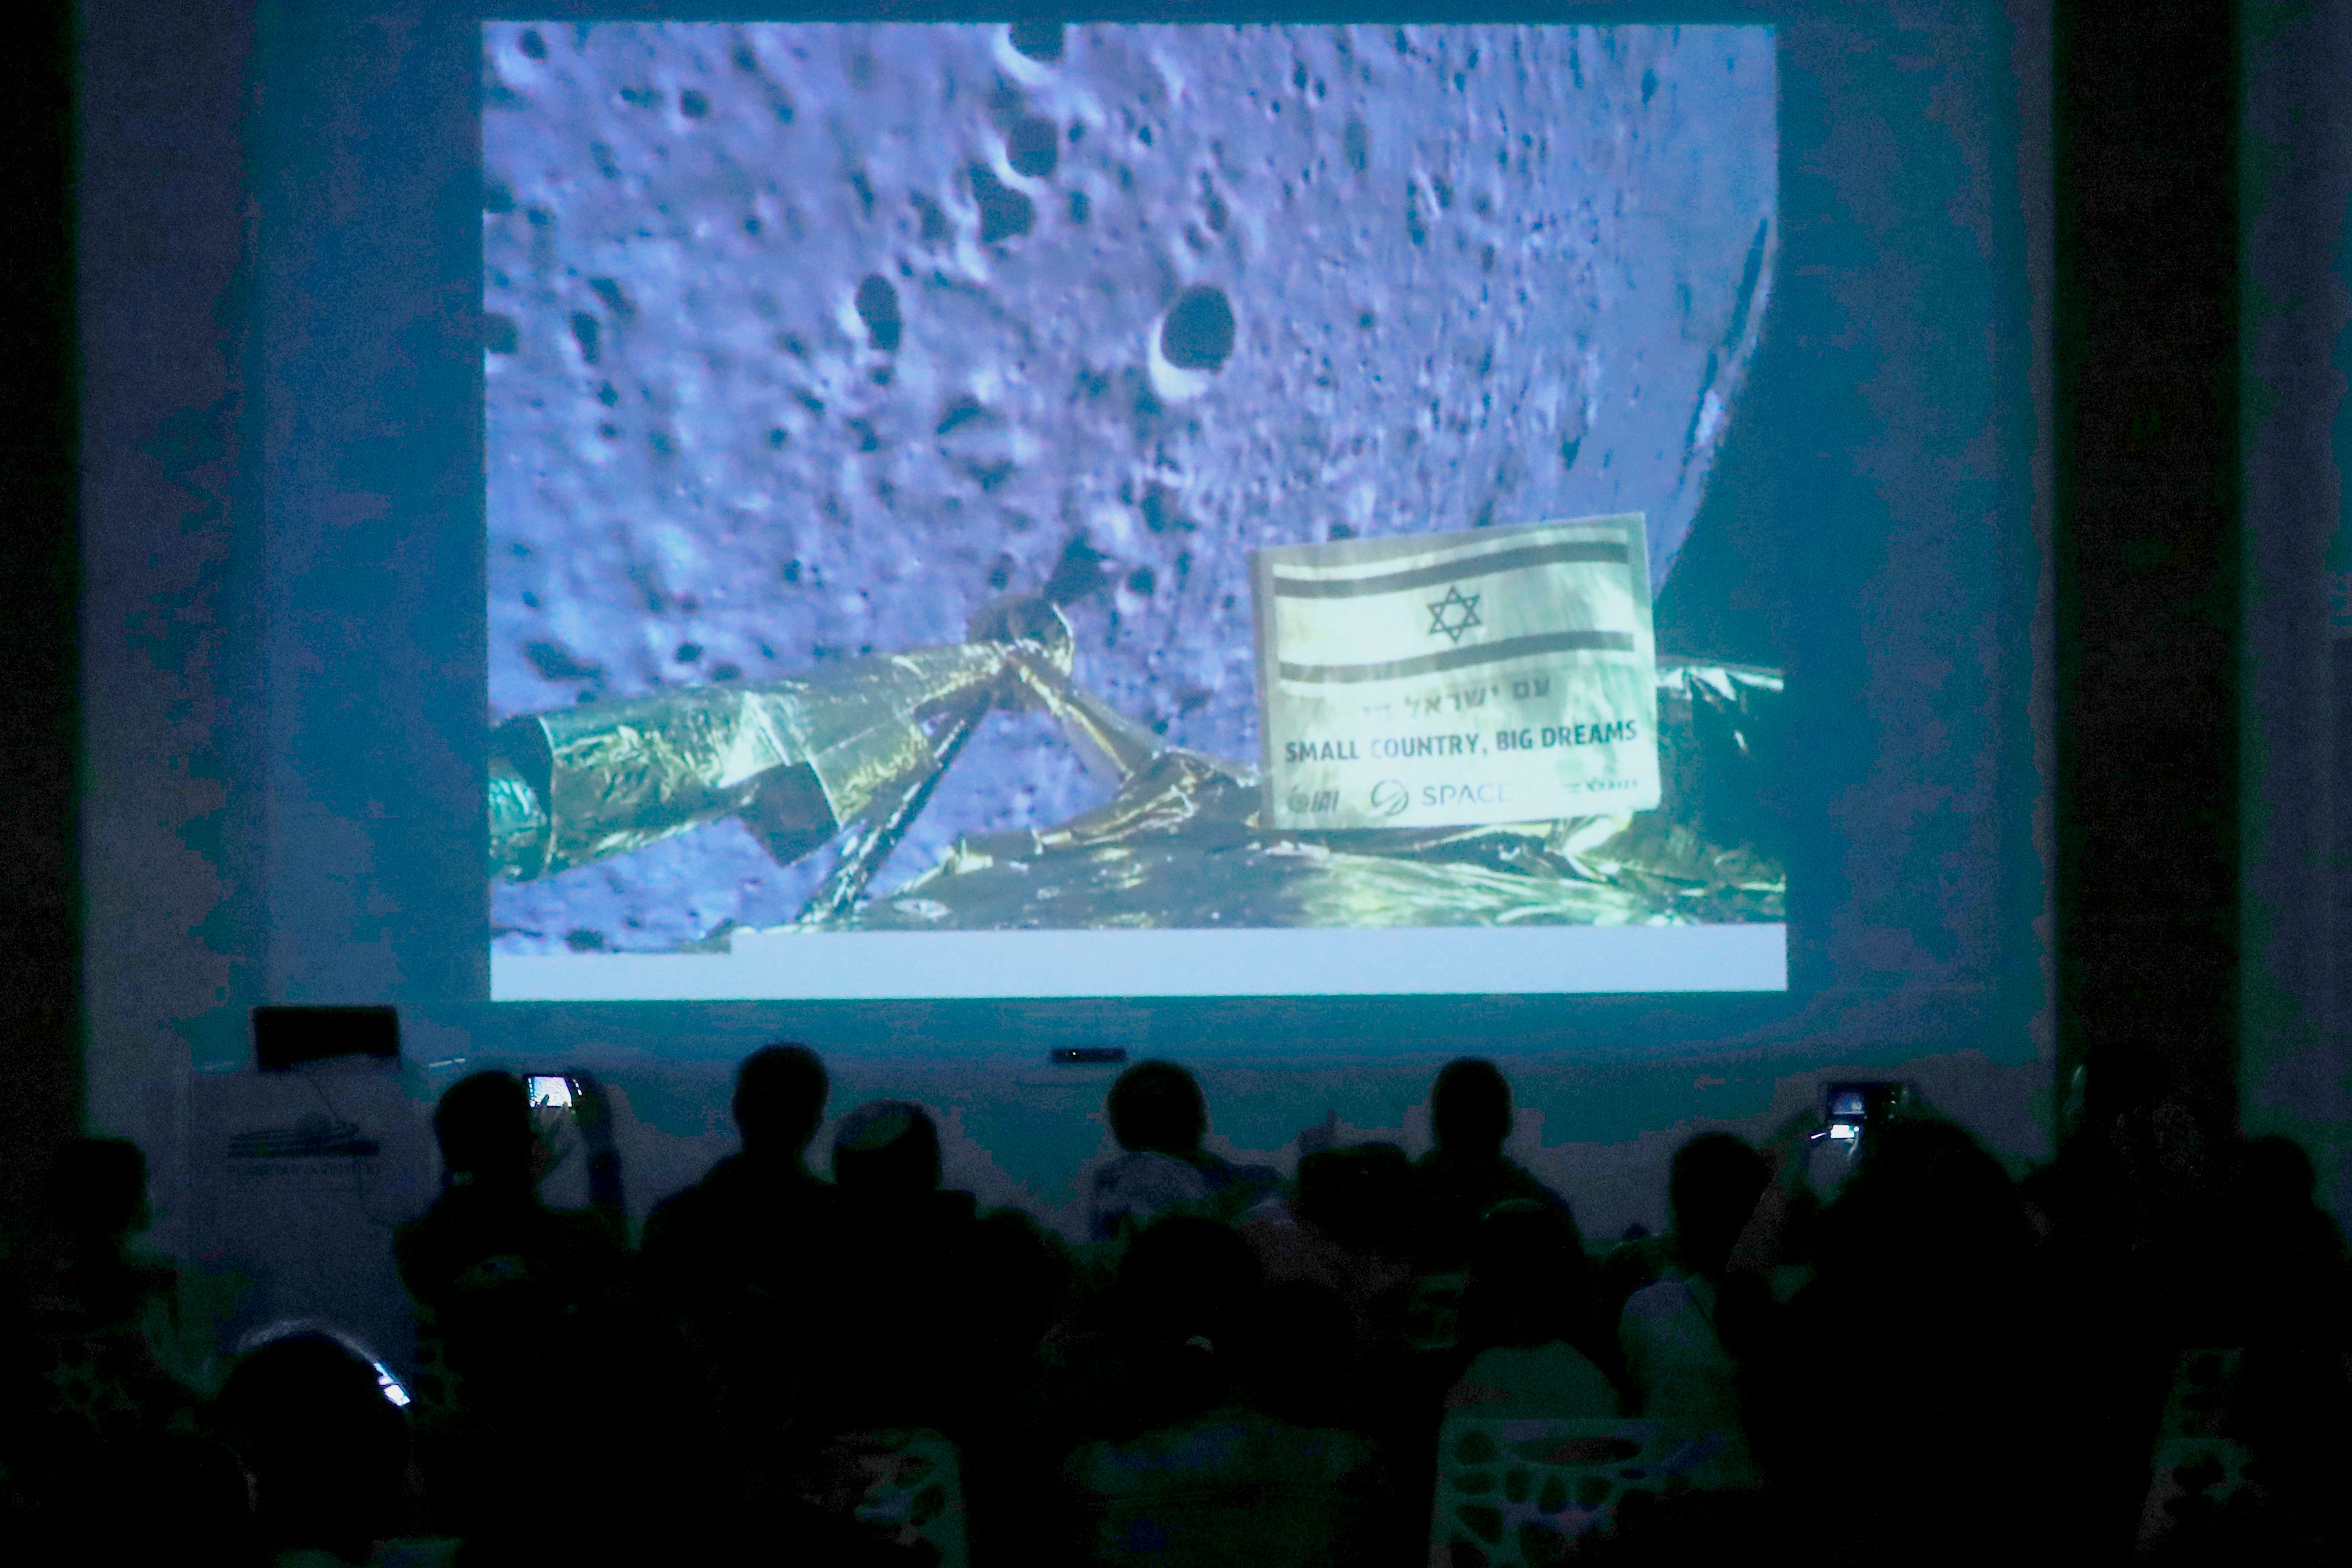 People watch a screen showing a picture taken by the camera of the Israel Beresheet spacecraft of the moon surface as the craft approaches and before it crashed during the landing at the 'Planetaya Planetarium' in the Israeli city of Netanya, on April 11, 2019. (Photo by JACK GUEZ / AFP)        (Photo credit should read JACK GUEZ/AFP/Getty Images)